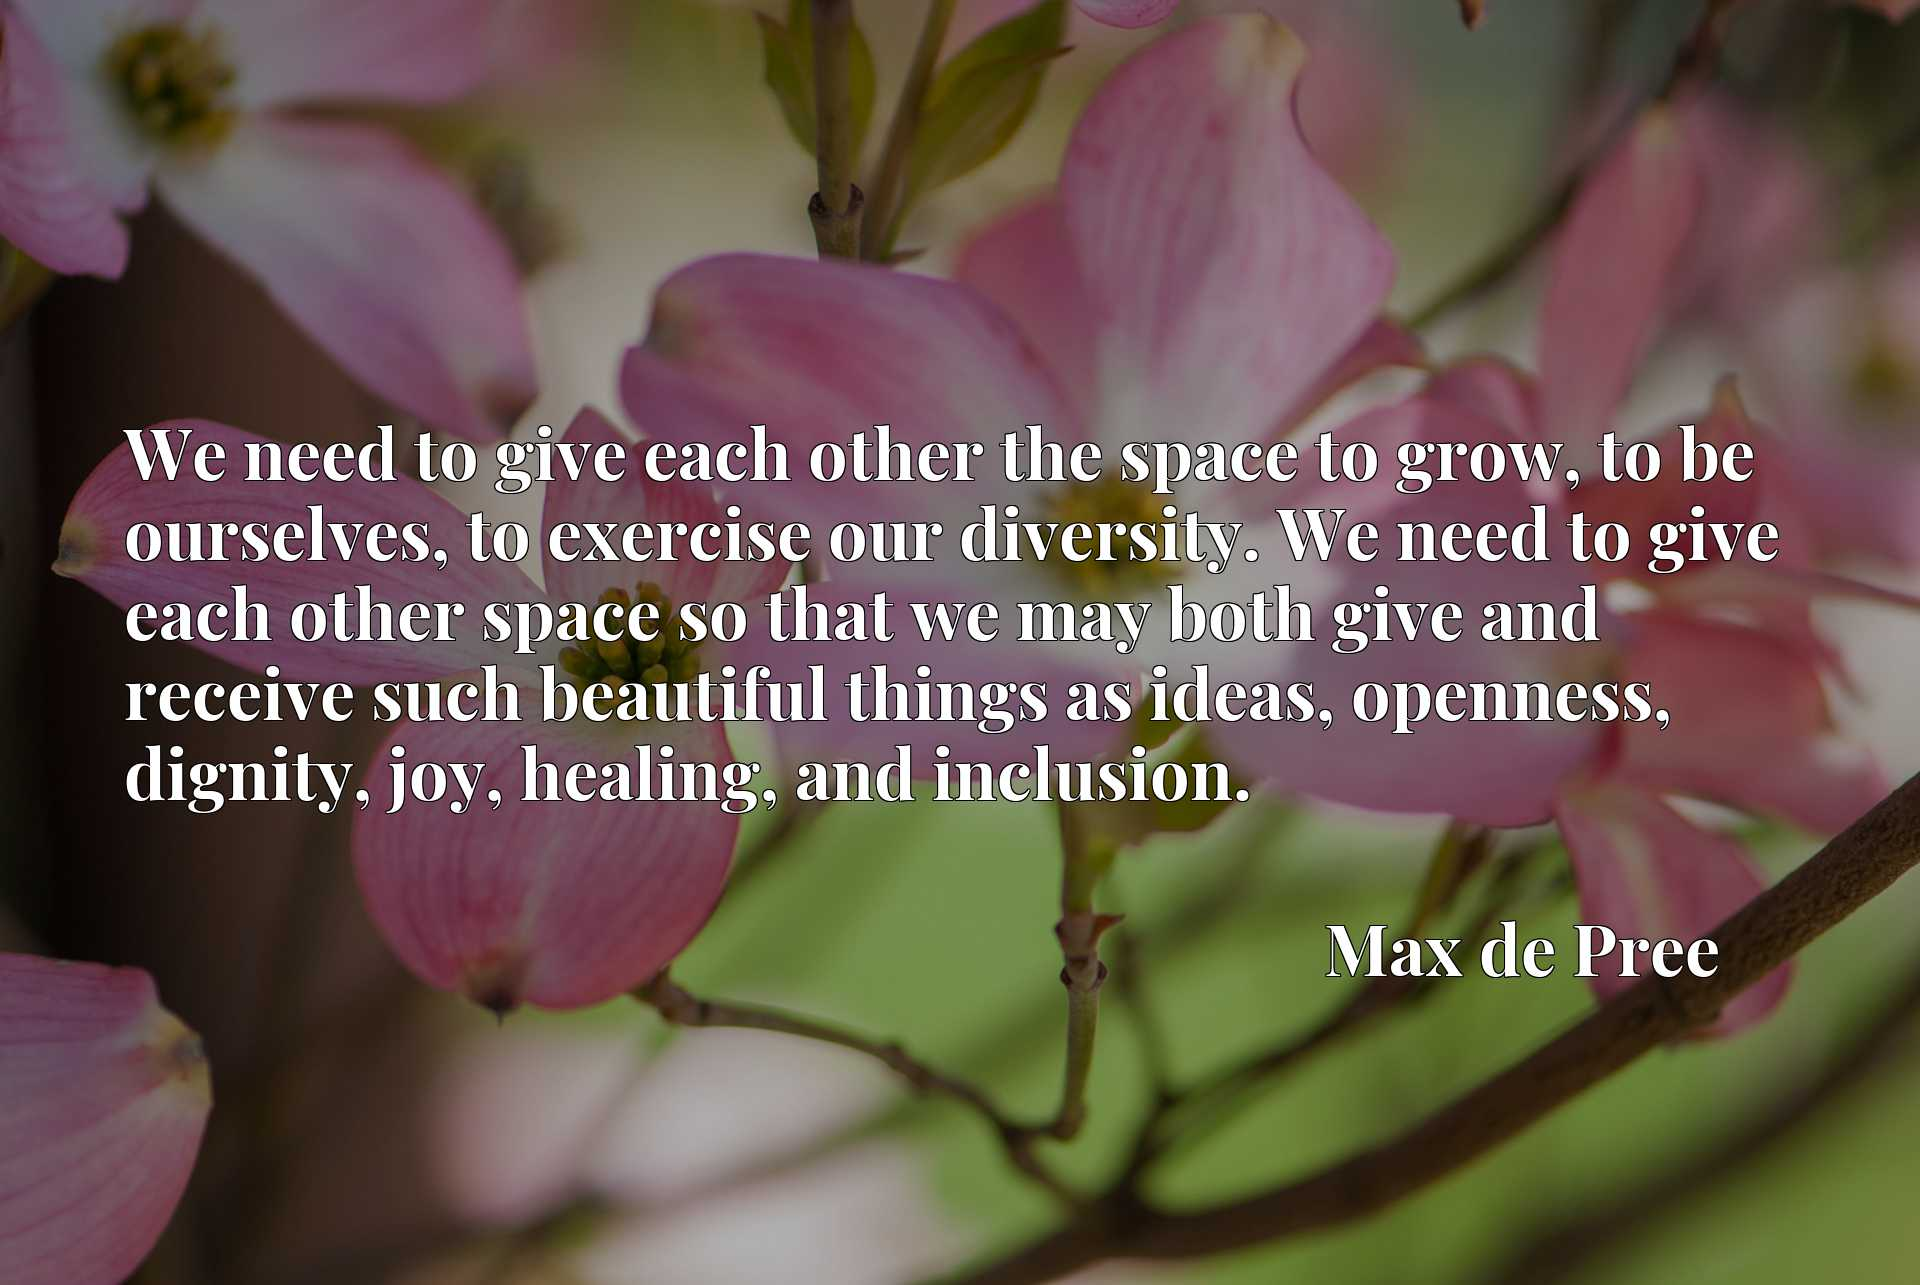 We need to give each other the space to grow, to be ourselves, to exercise our diversity. We need to give each other space so that we may both give and receive such beautiful things as ideas, openness, dignity, joy, healing, and inclusion.